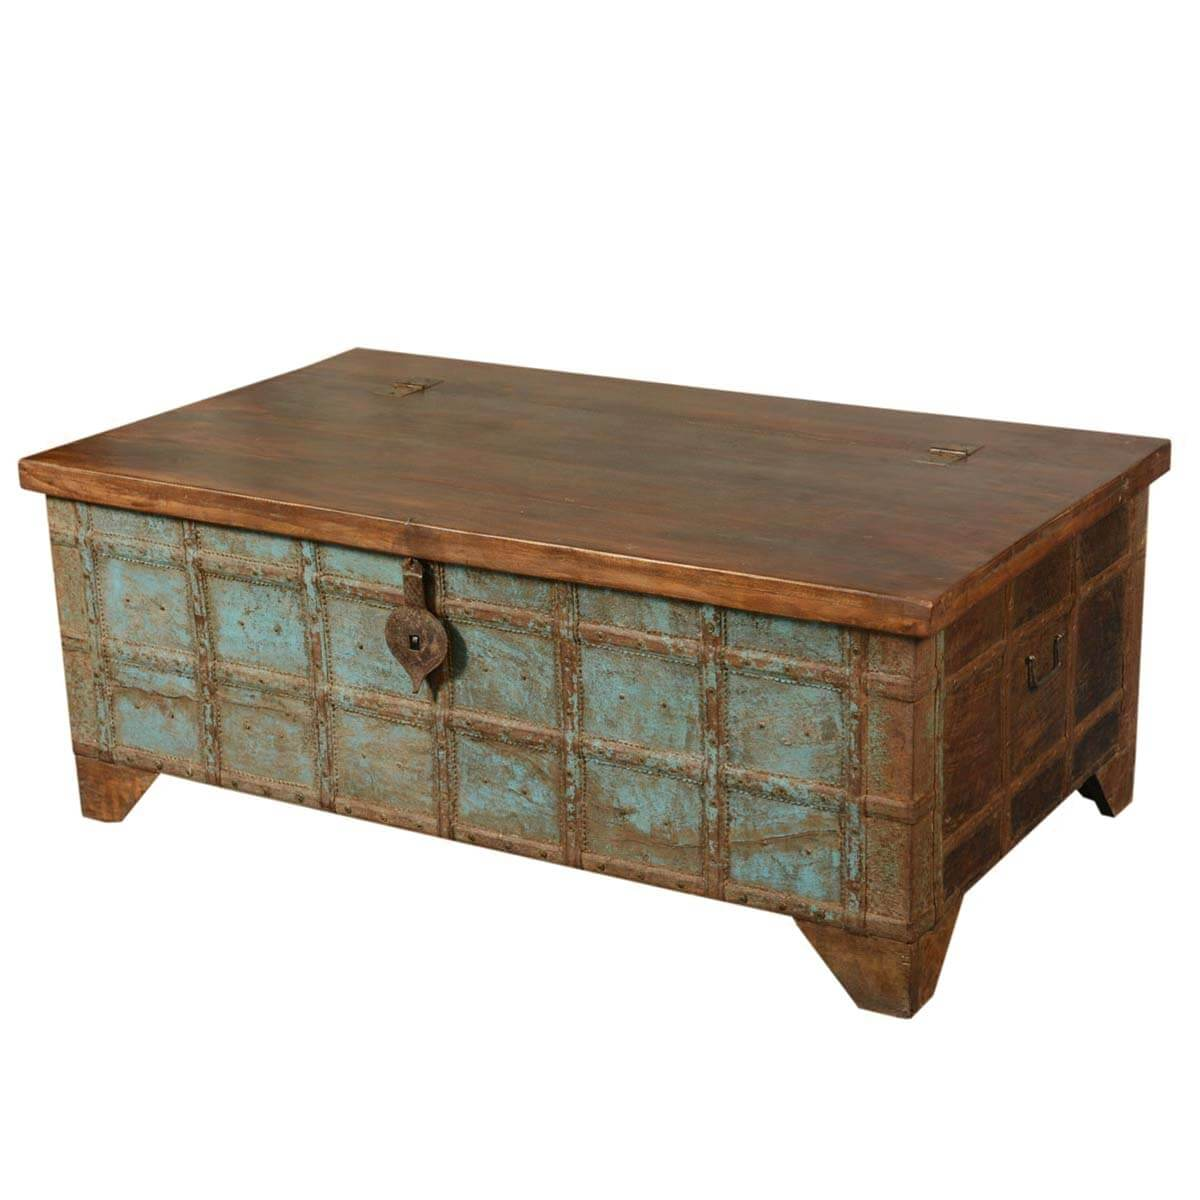 Captain 39 s stash reclaimed wood coffee table storage chest for Reclaimed coffee table